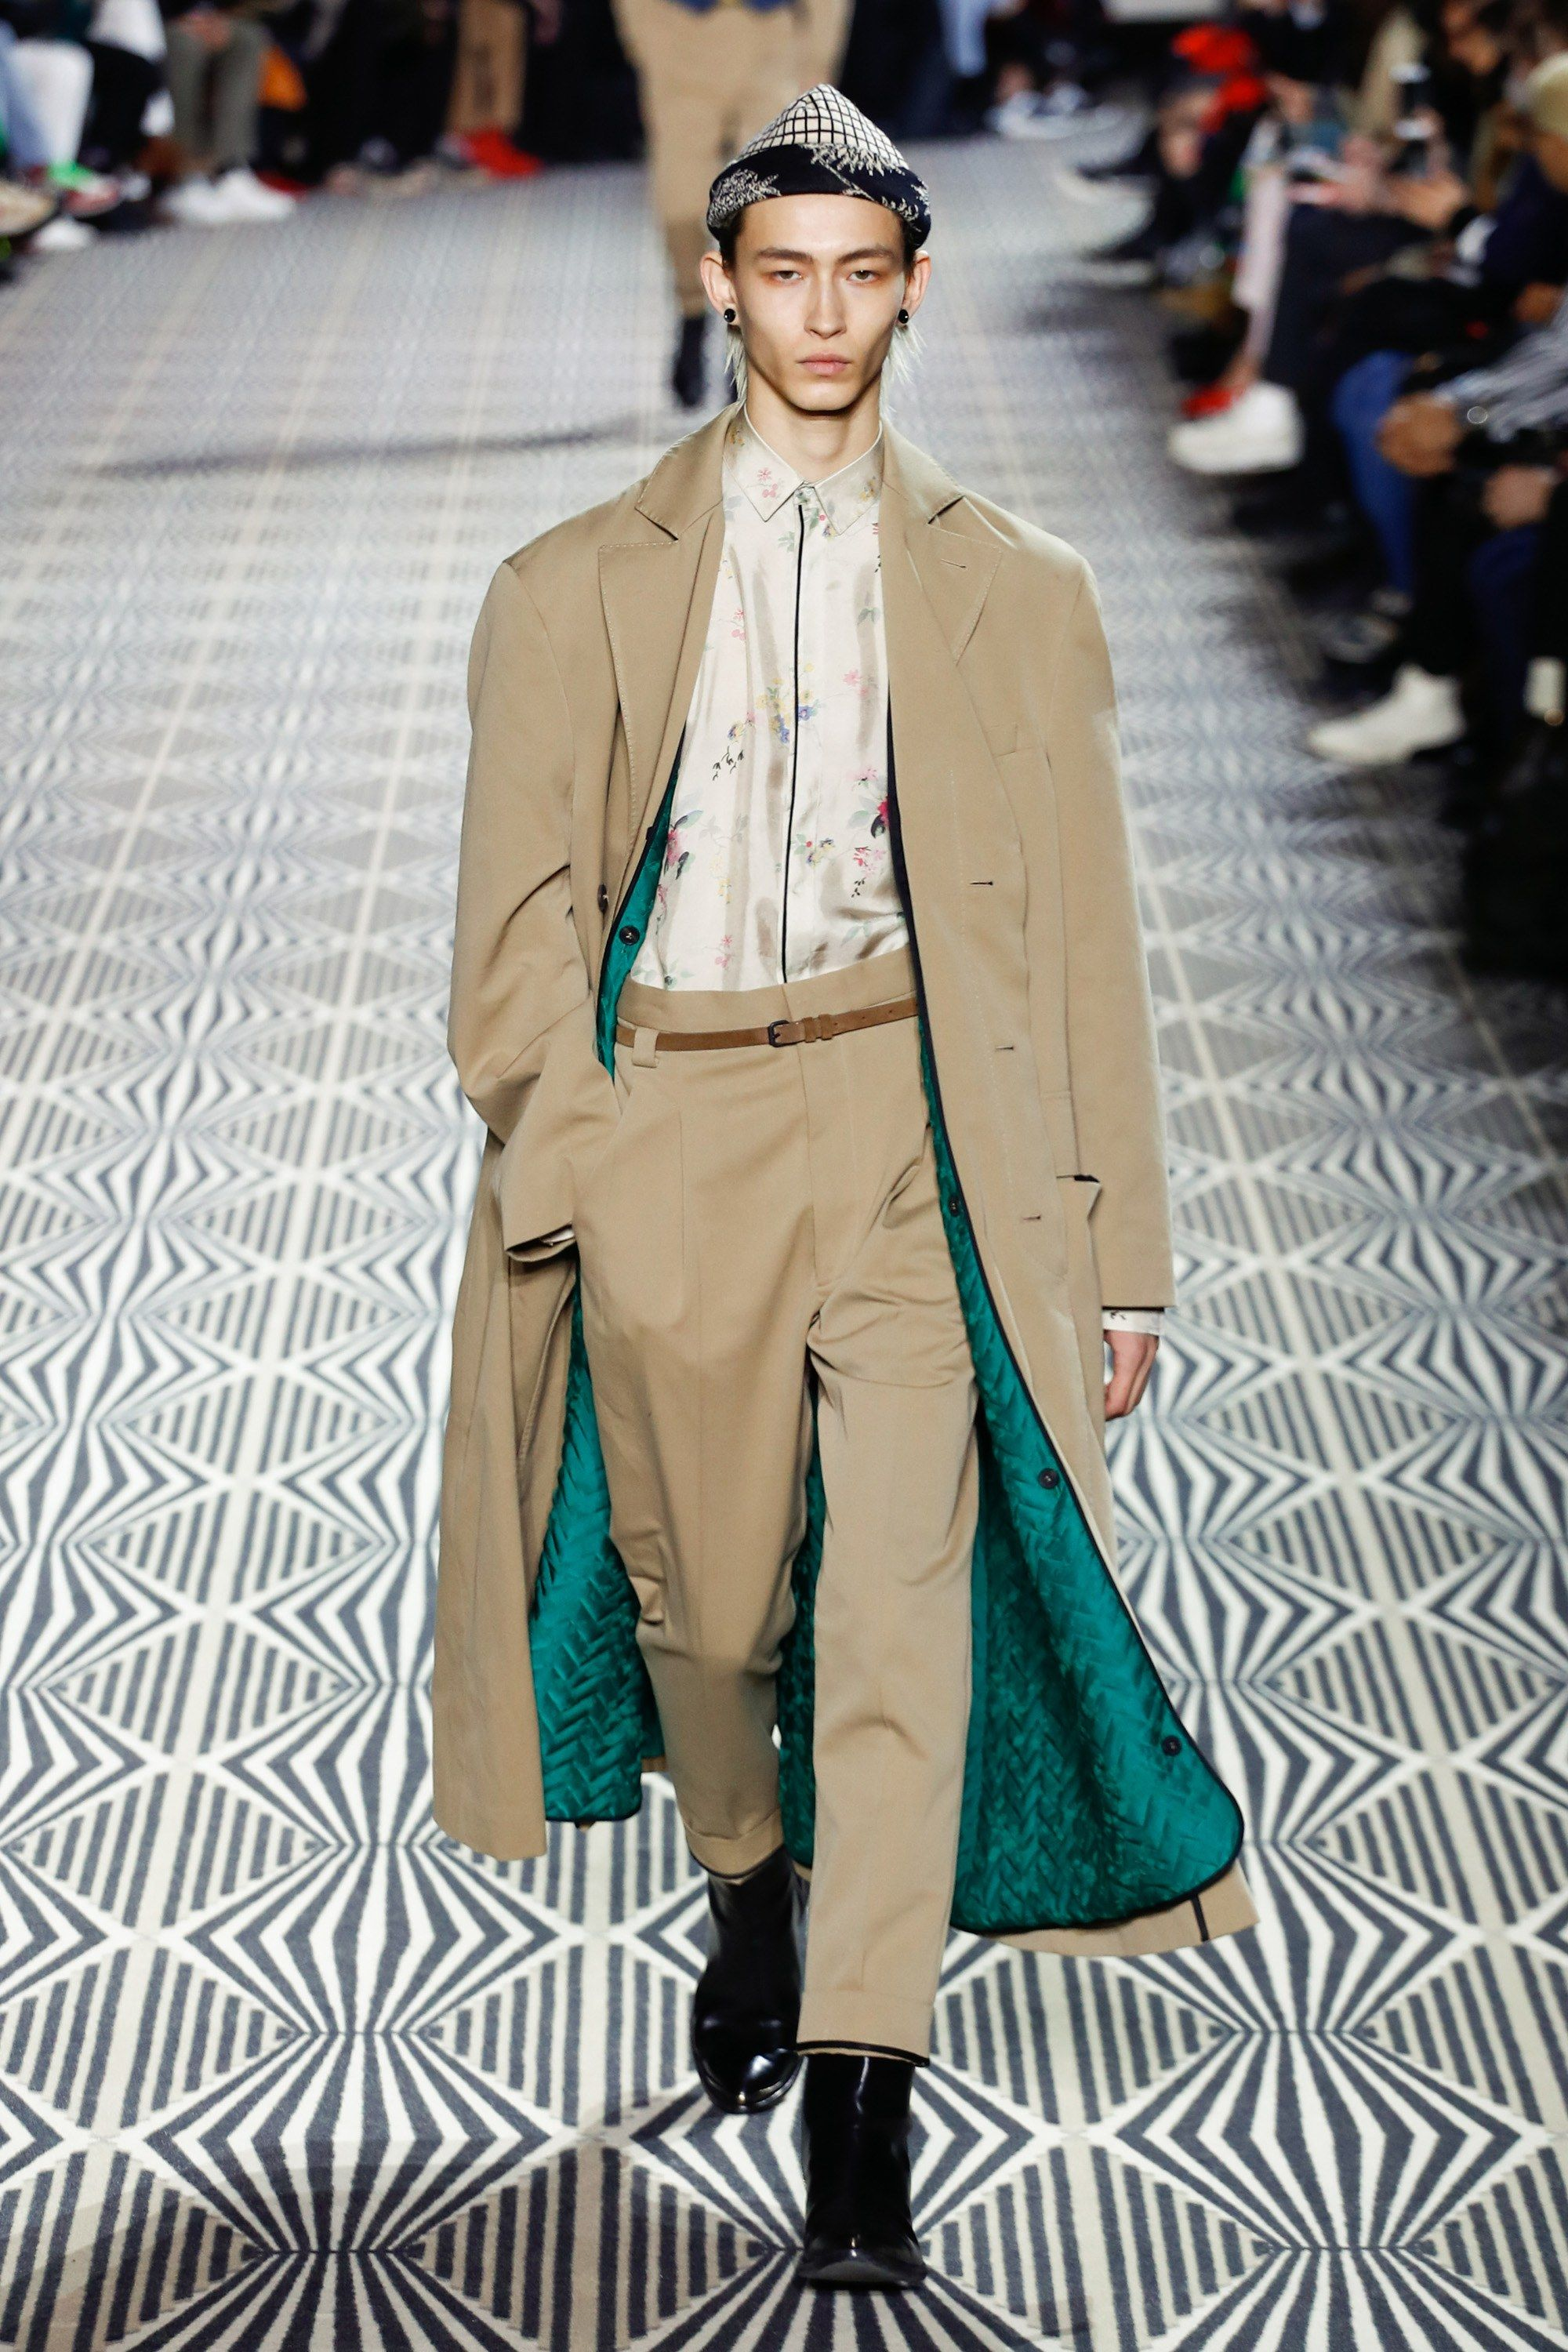 Haider ackermann fall menswear fashion show collection